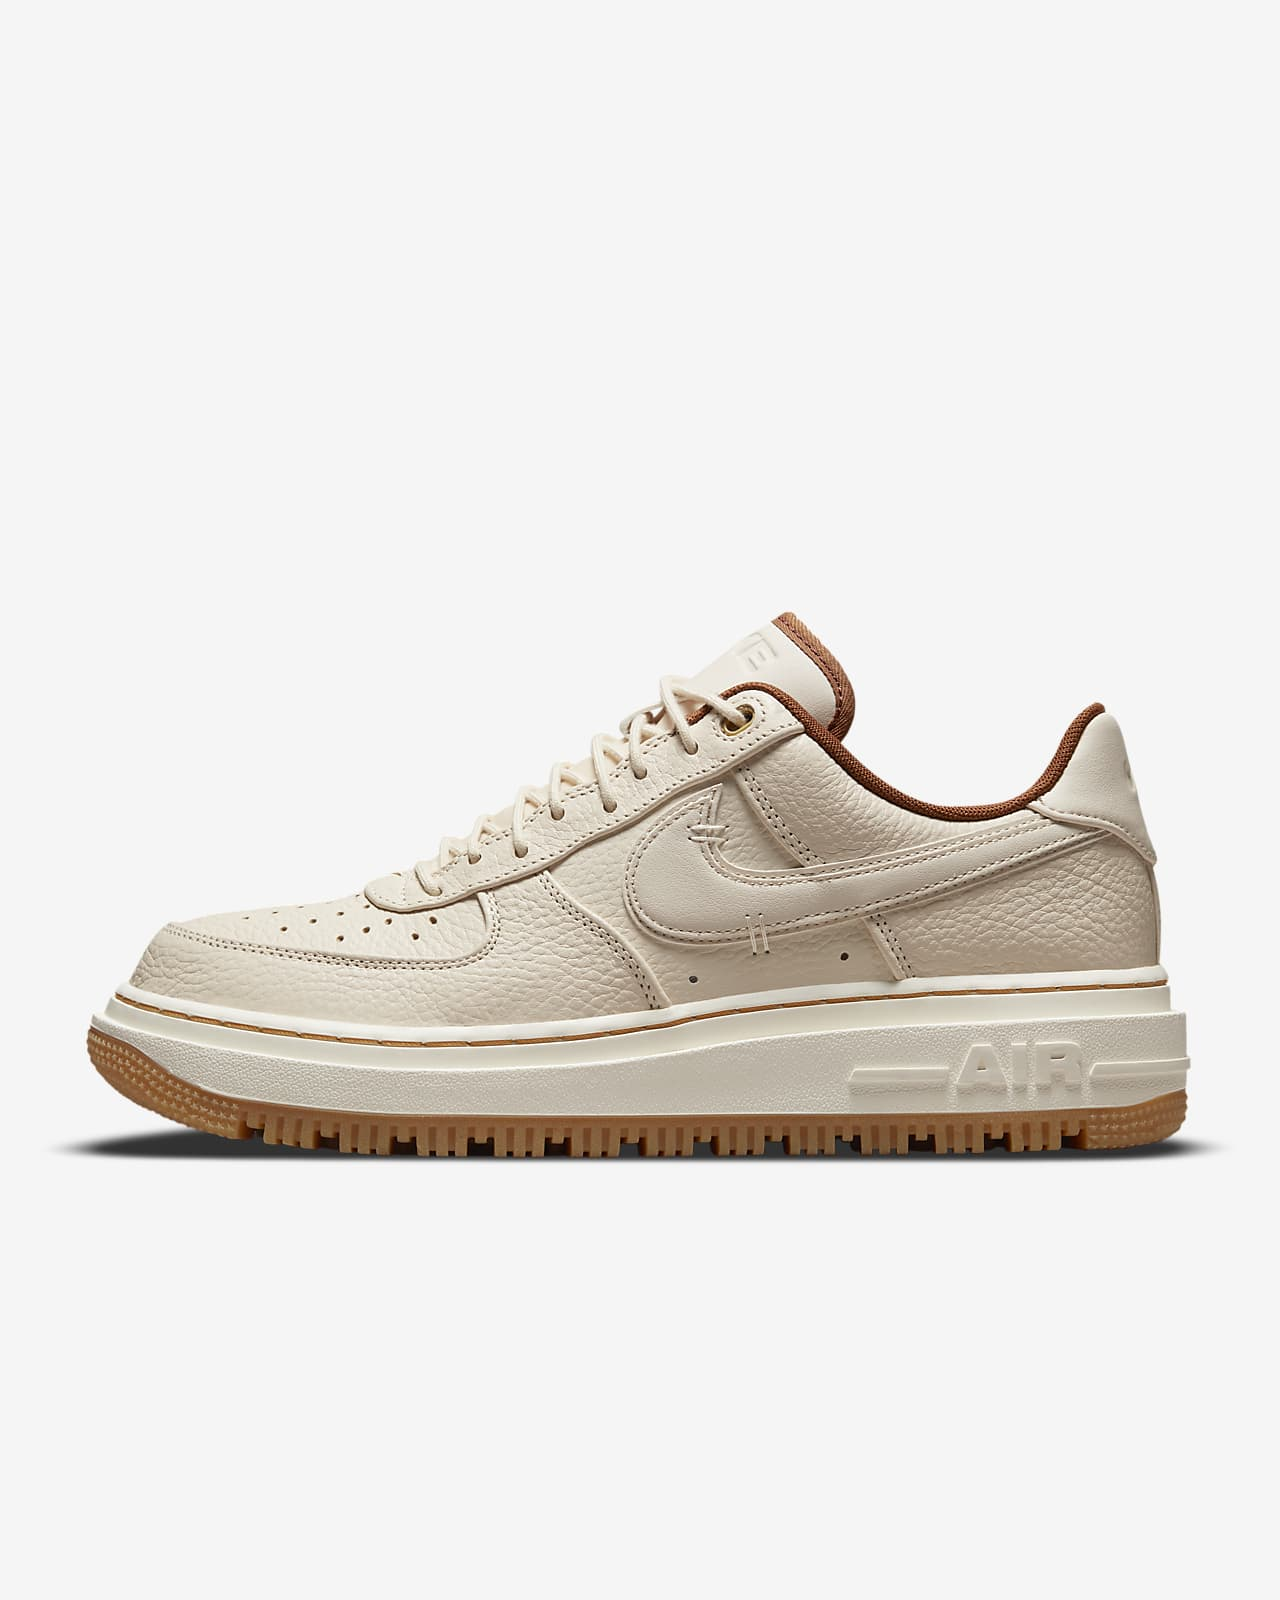 Nike Air Force 1 Luxe 'Pale Ivory / Gum'